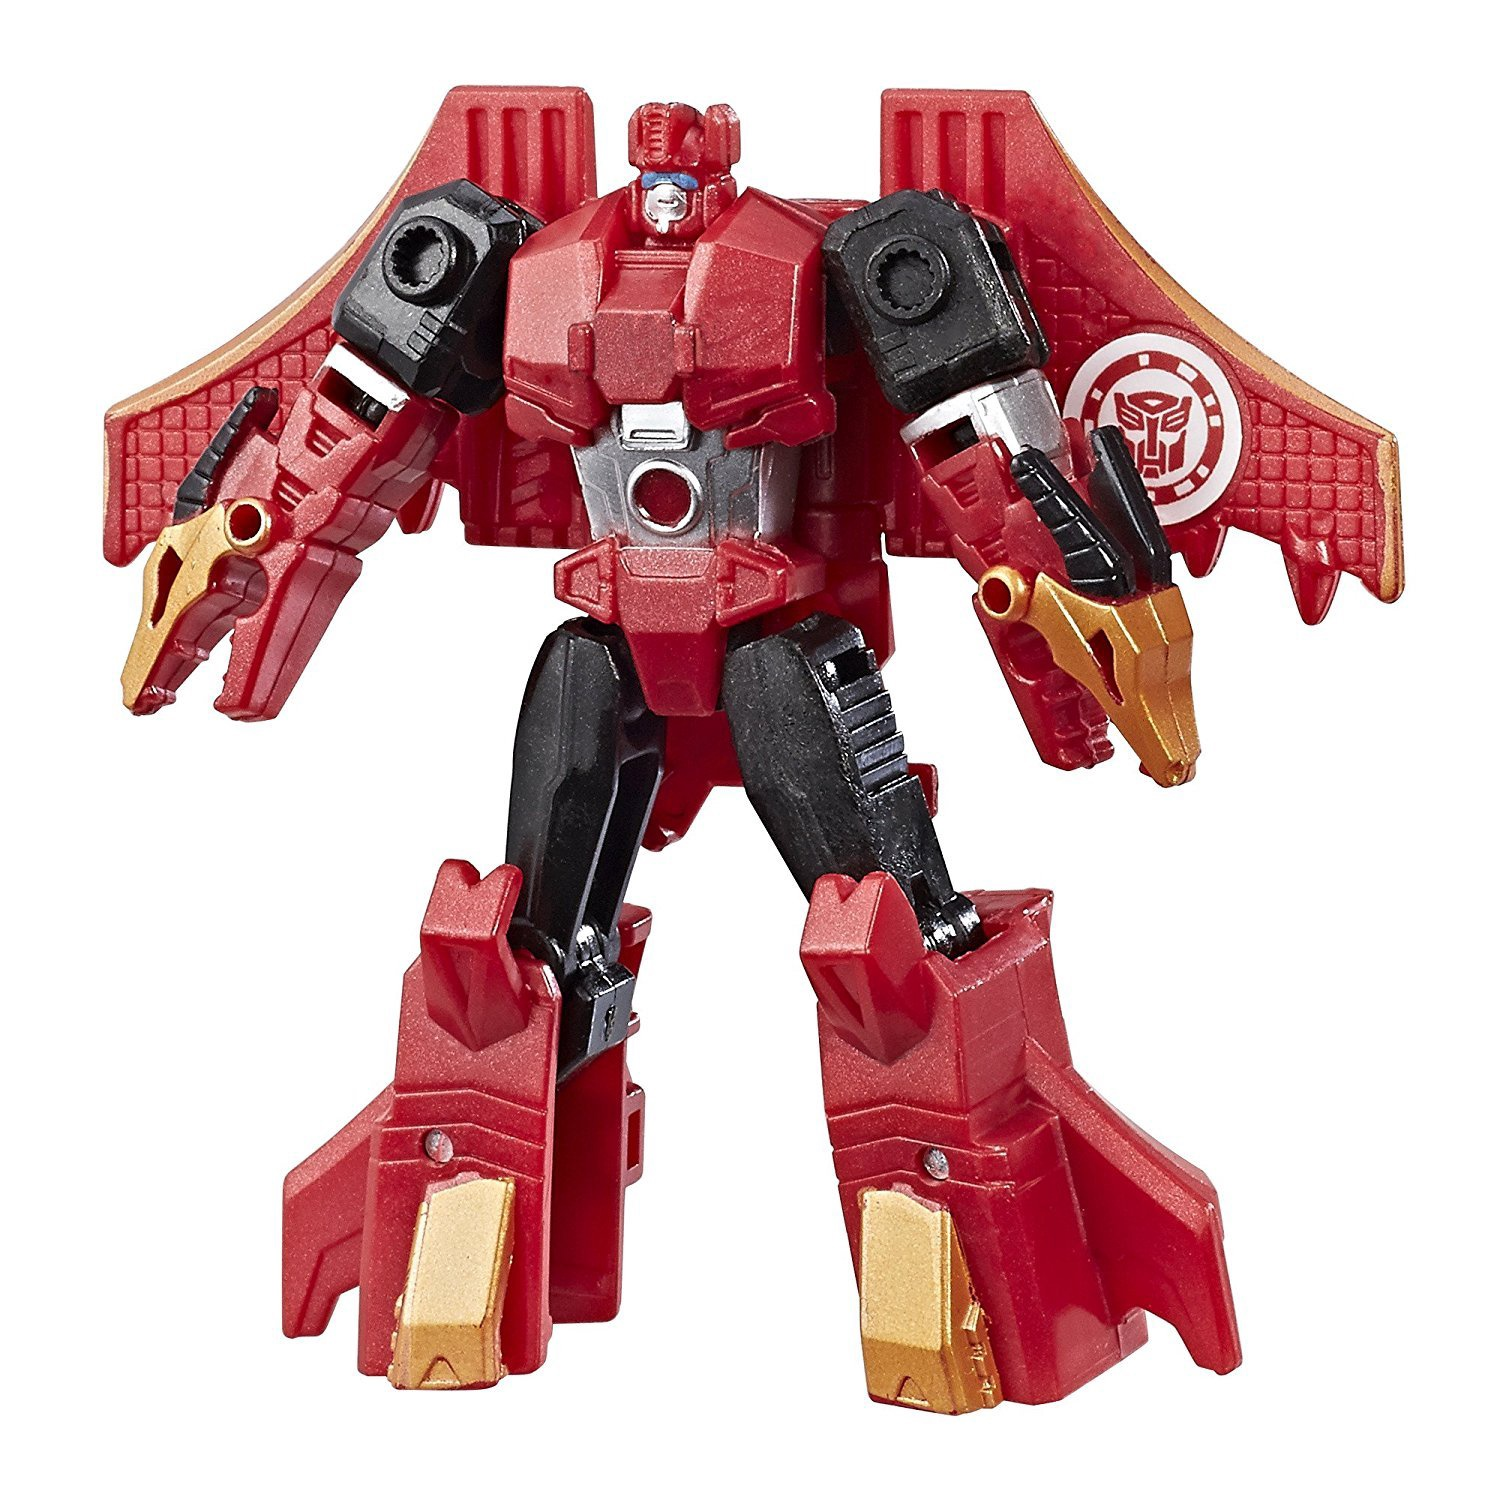 TRANSFORMERS ROBOTS IN DISGUISE AUTOBOT TWINFERNO